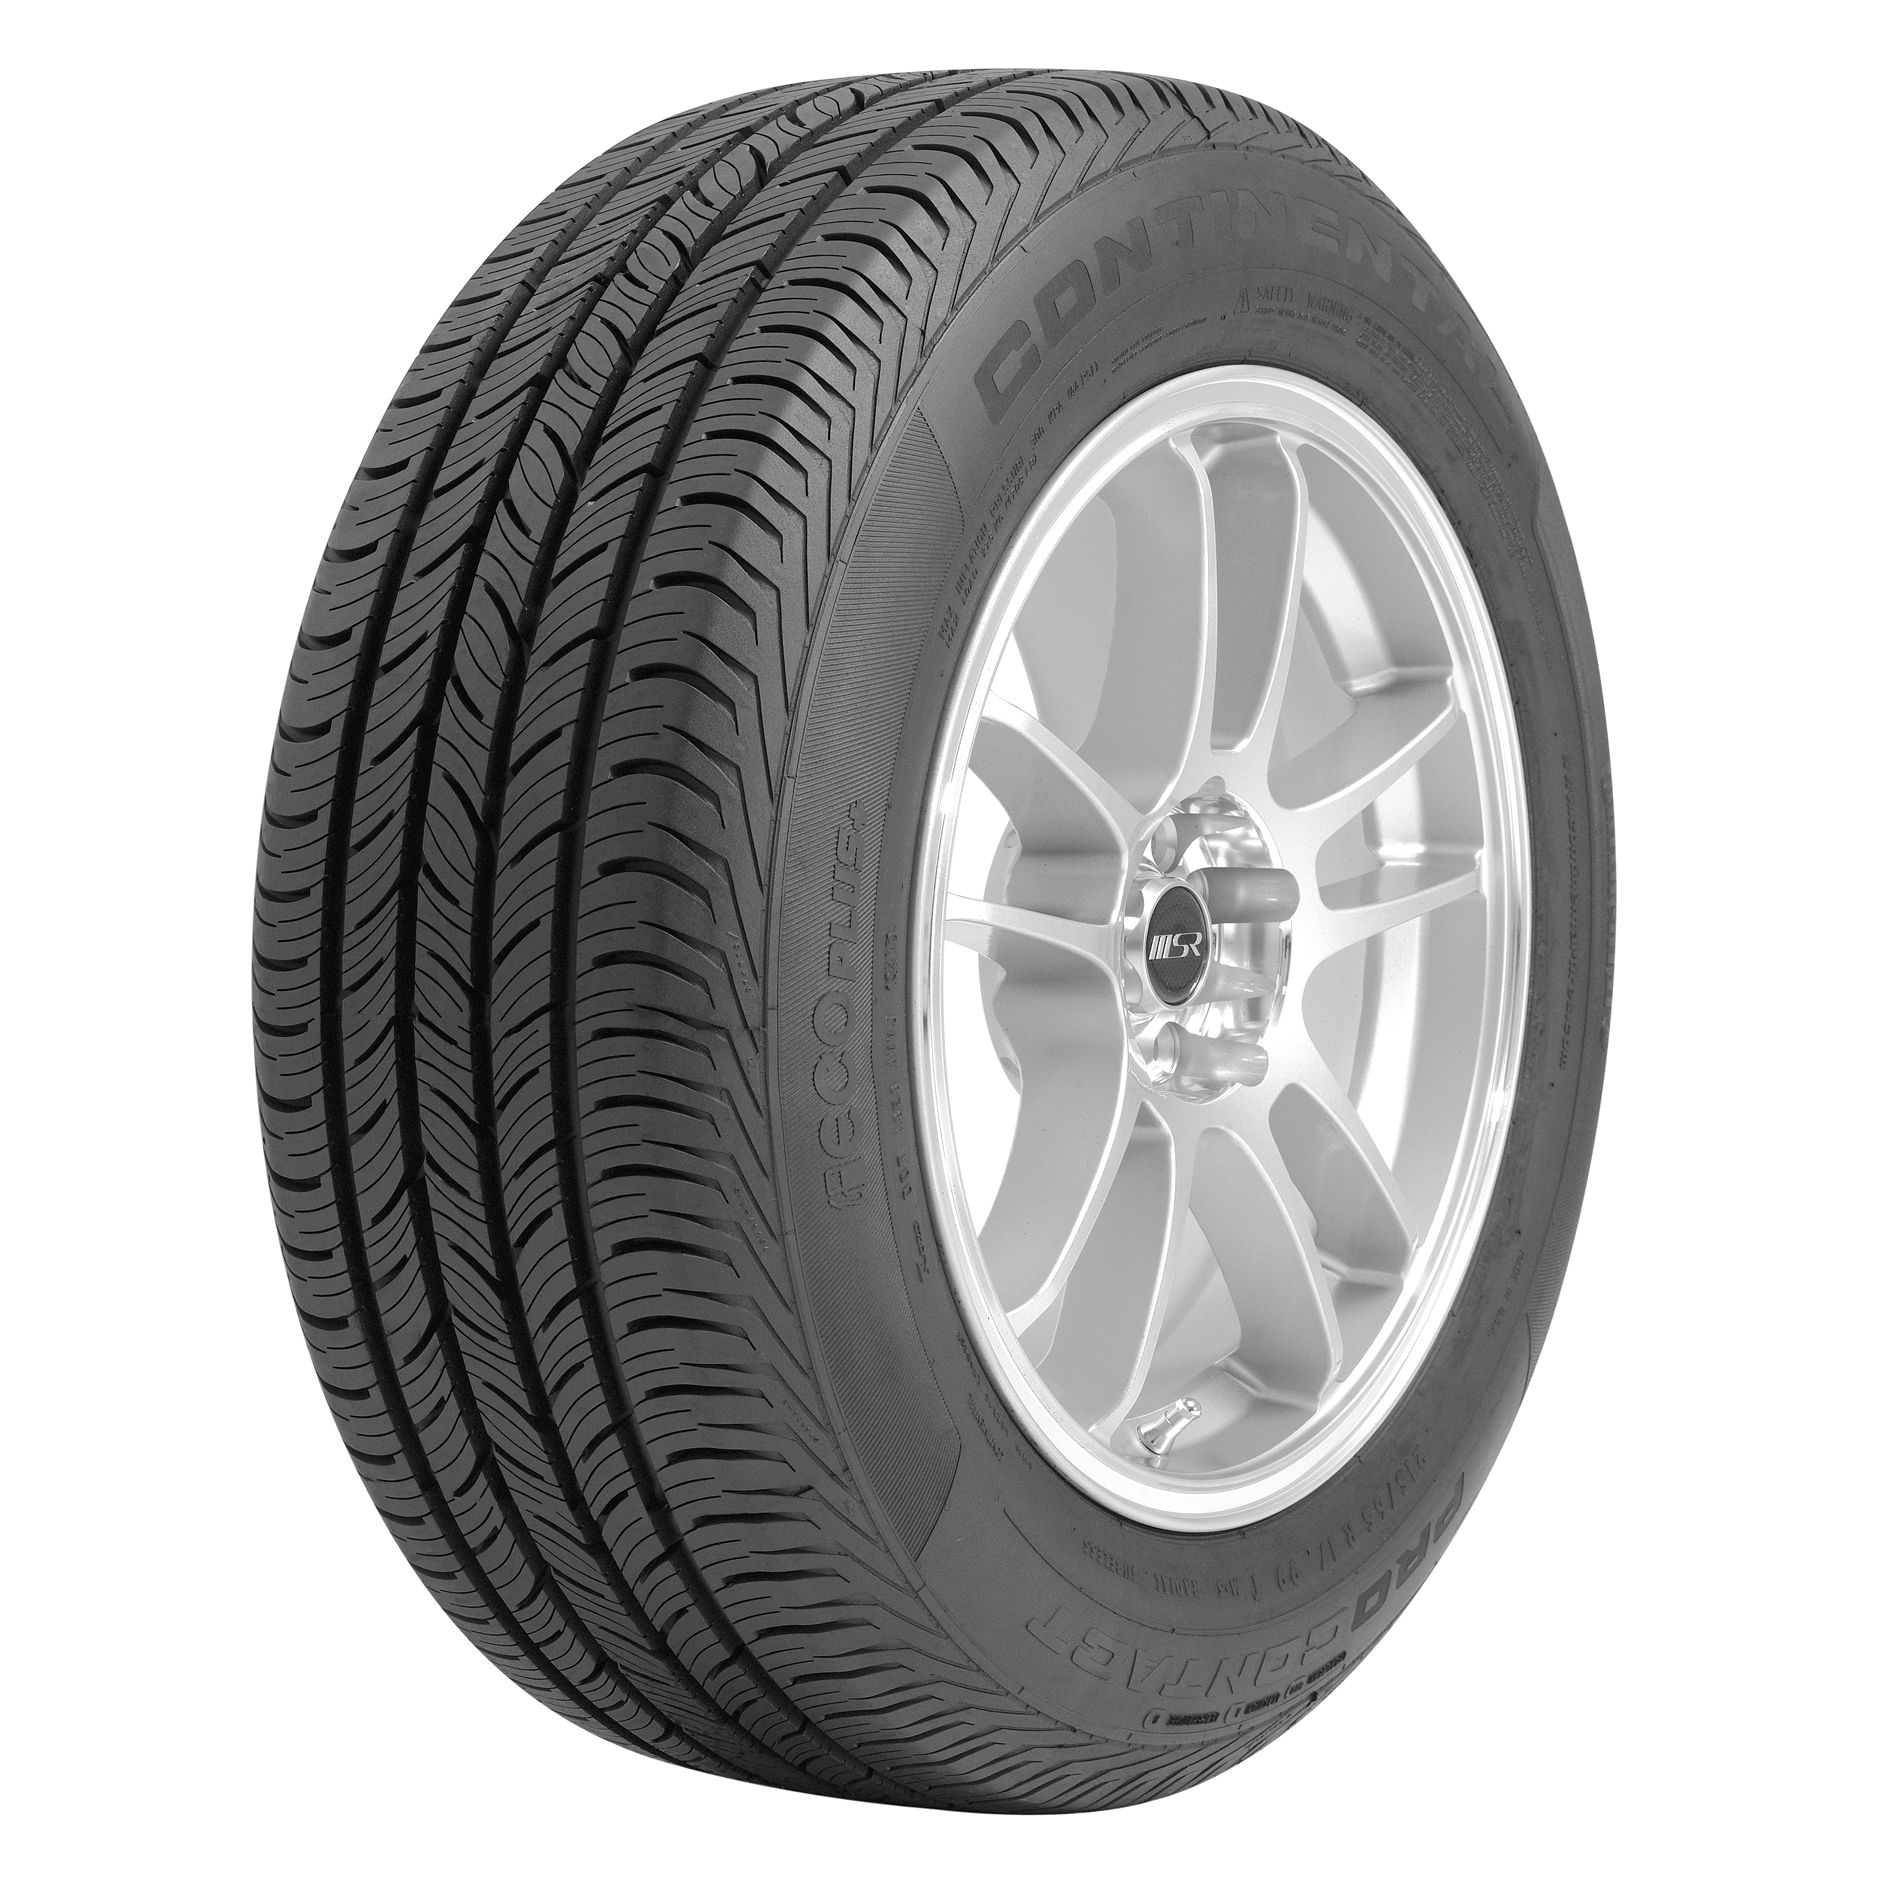 Continental Pro Contact Eco Plus - 205/60R15 91T BW - All-Season Tire